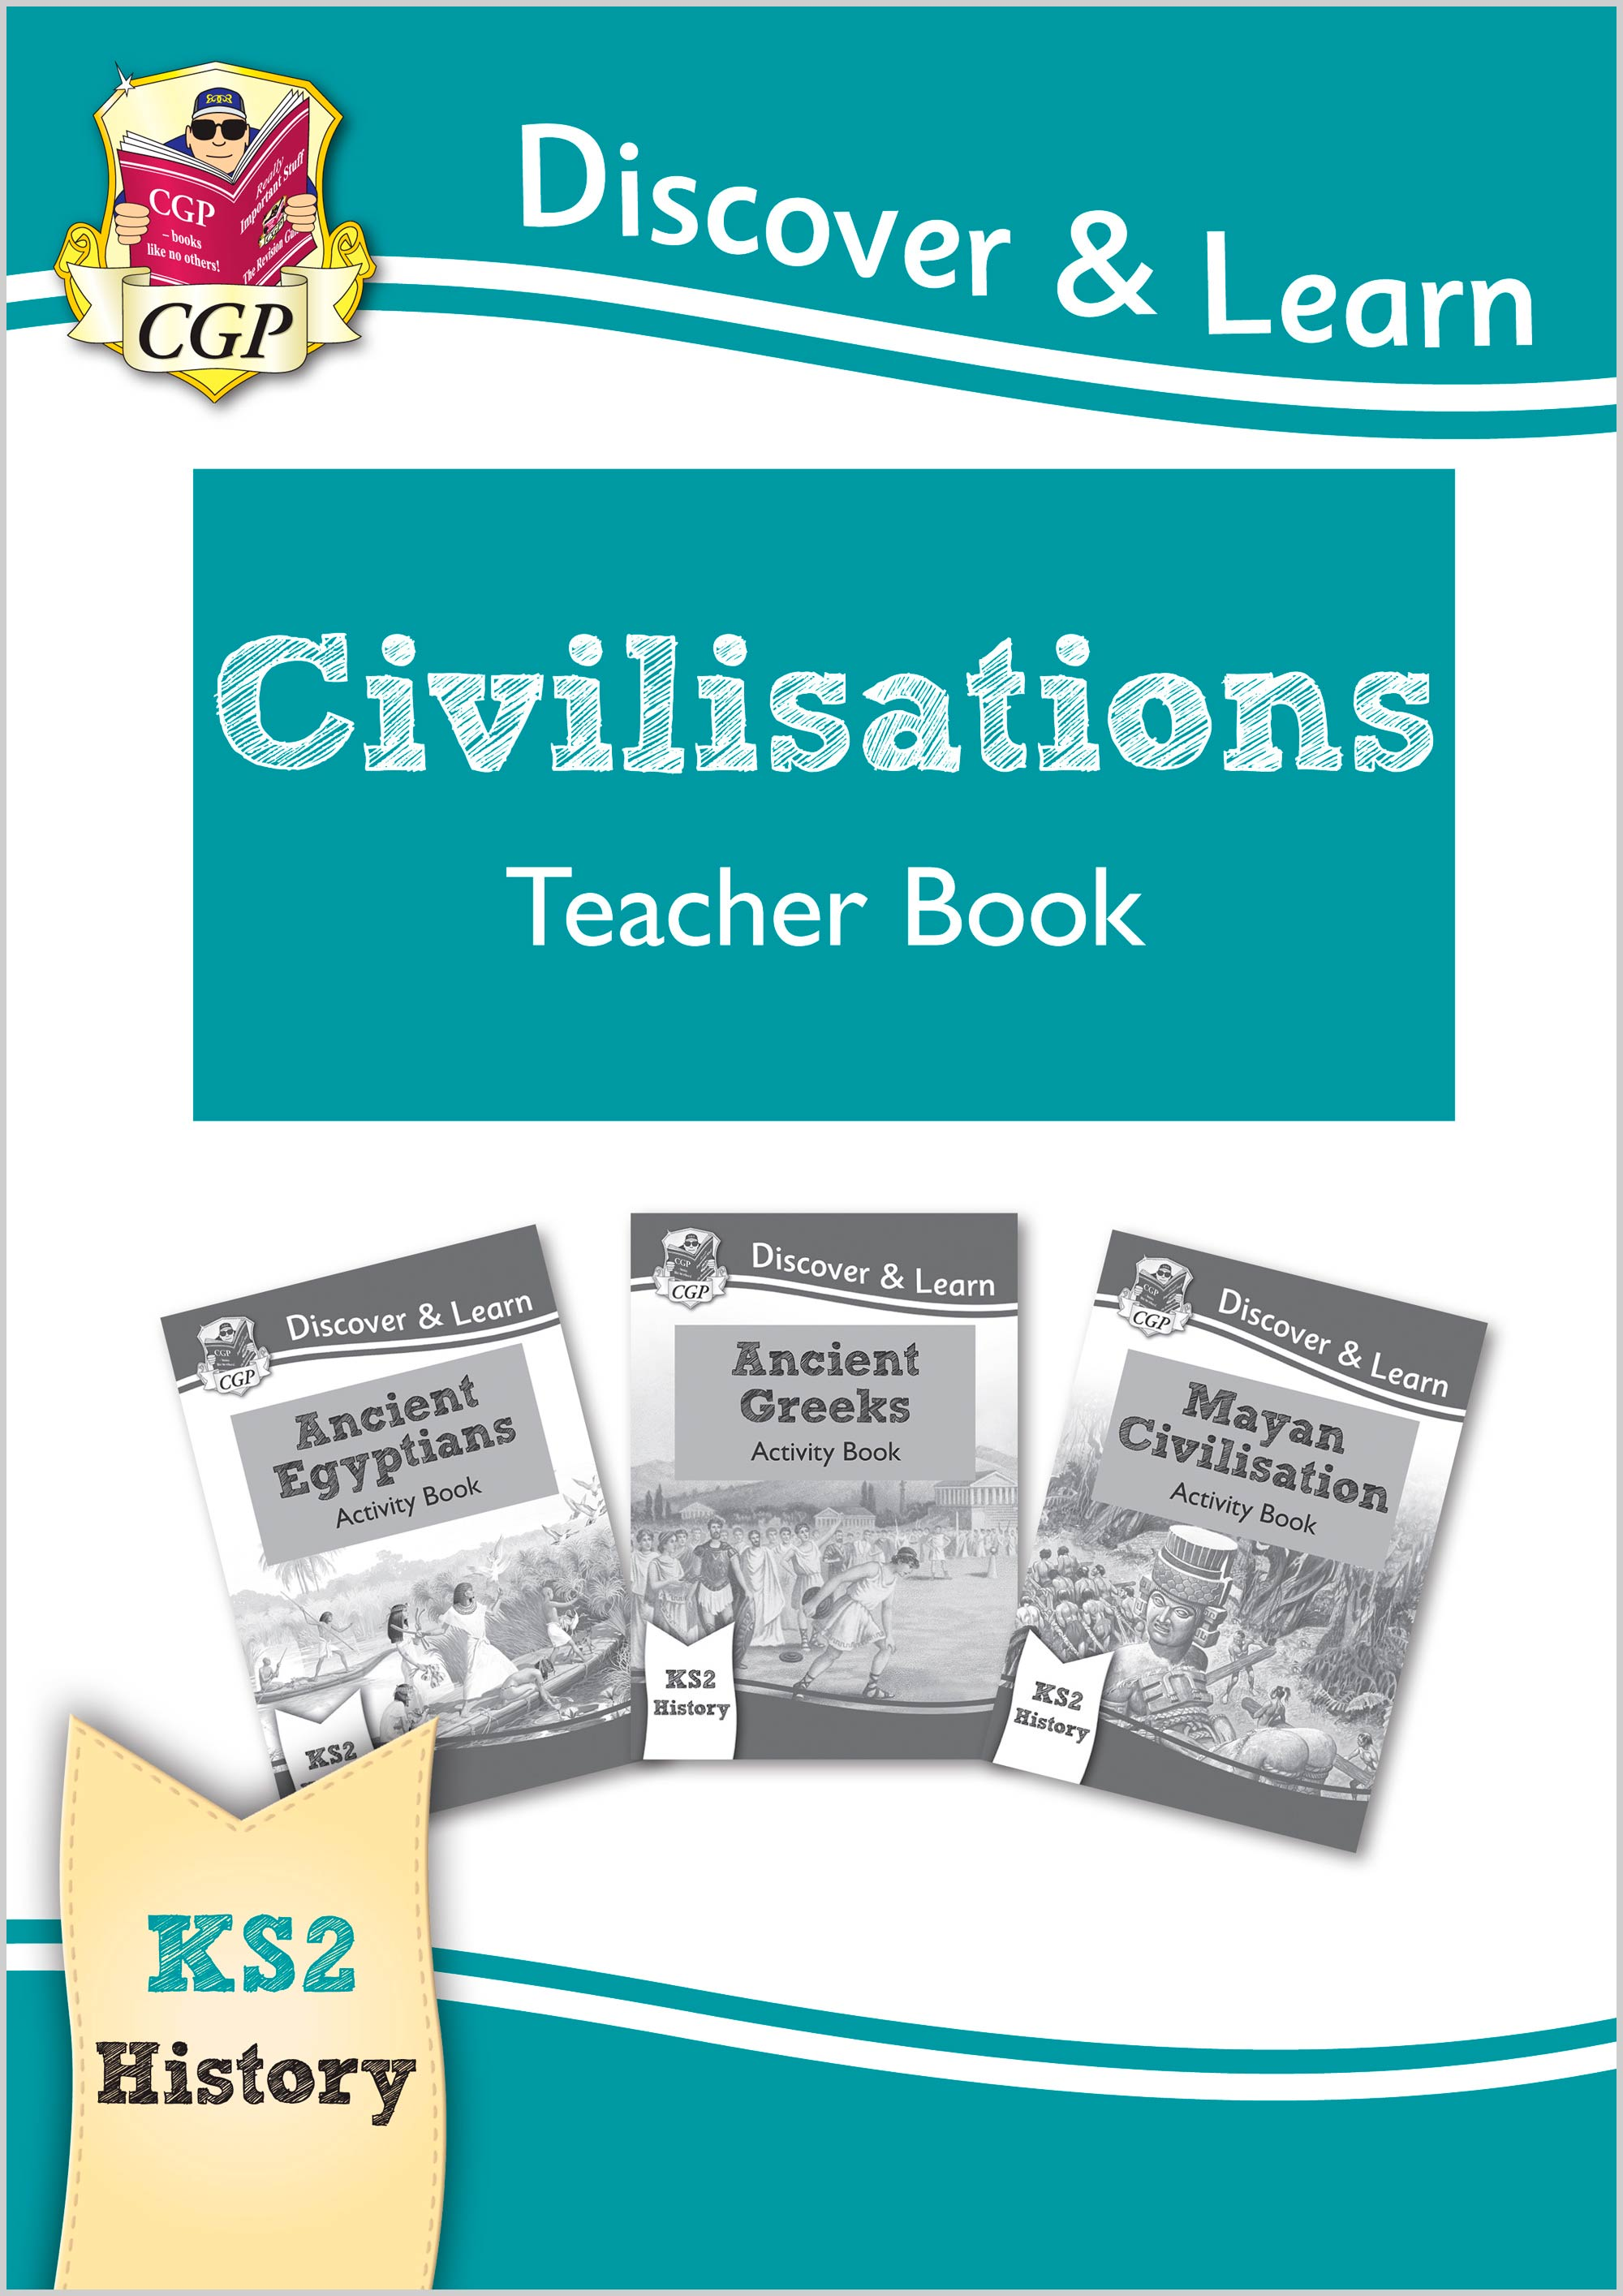 HCVT21 - New KS2 Discover & Learn: History - Civilisations Teacher Book (Egyptians, Greeks, Maya), Y